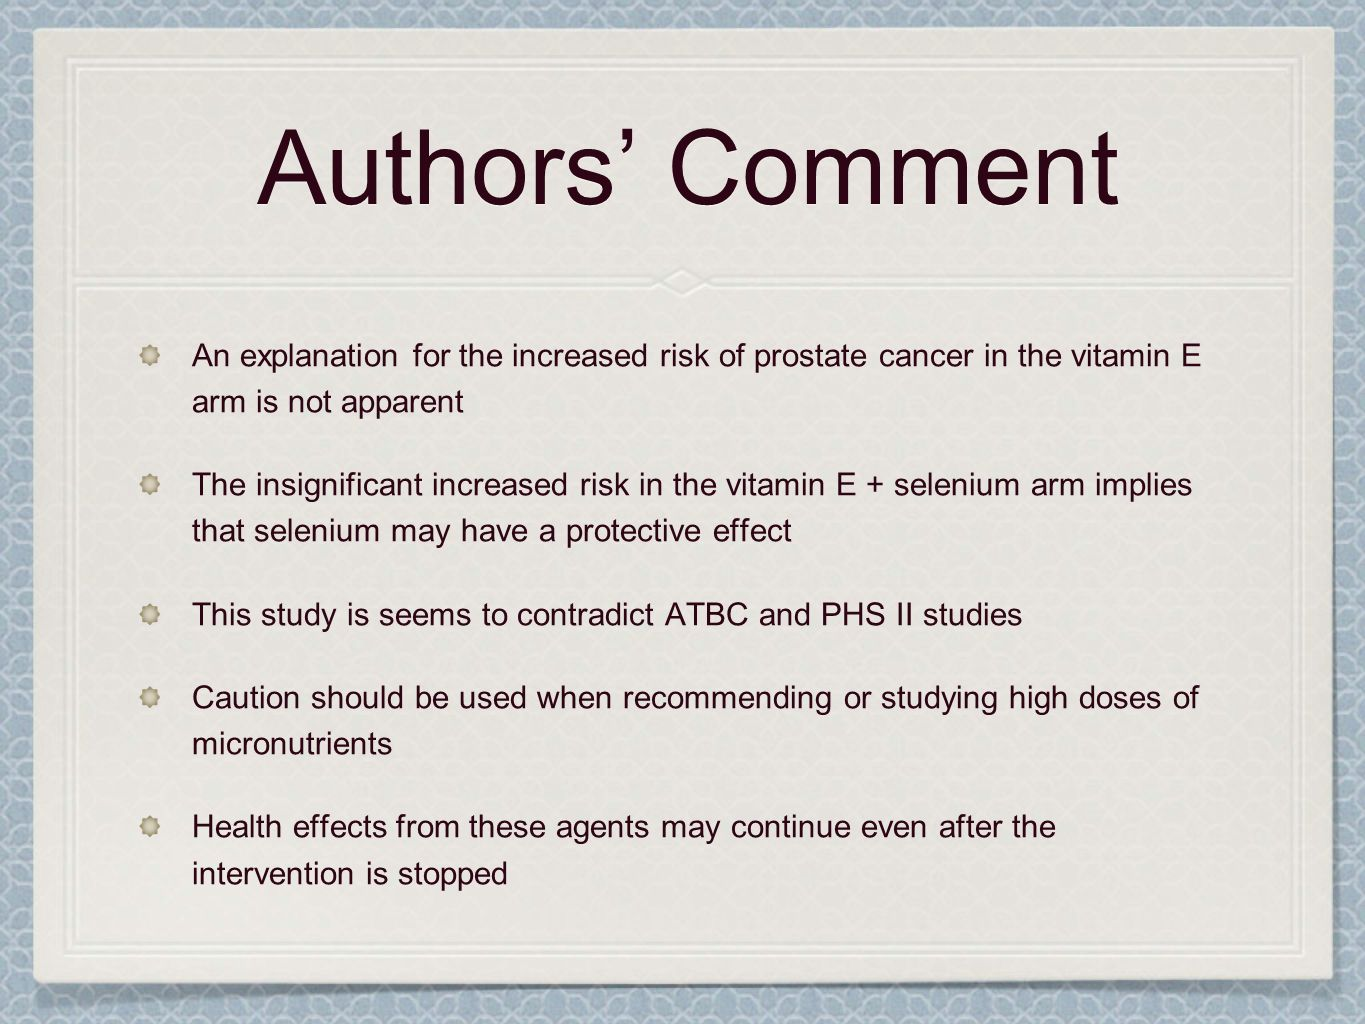 Authors' CommentAn explanation for the increased risk of prostate cancer in the vitamin E arm is not apparent.